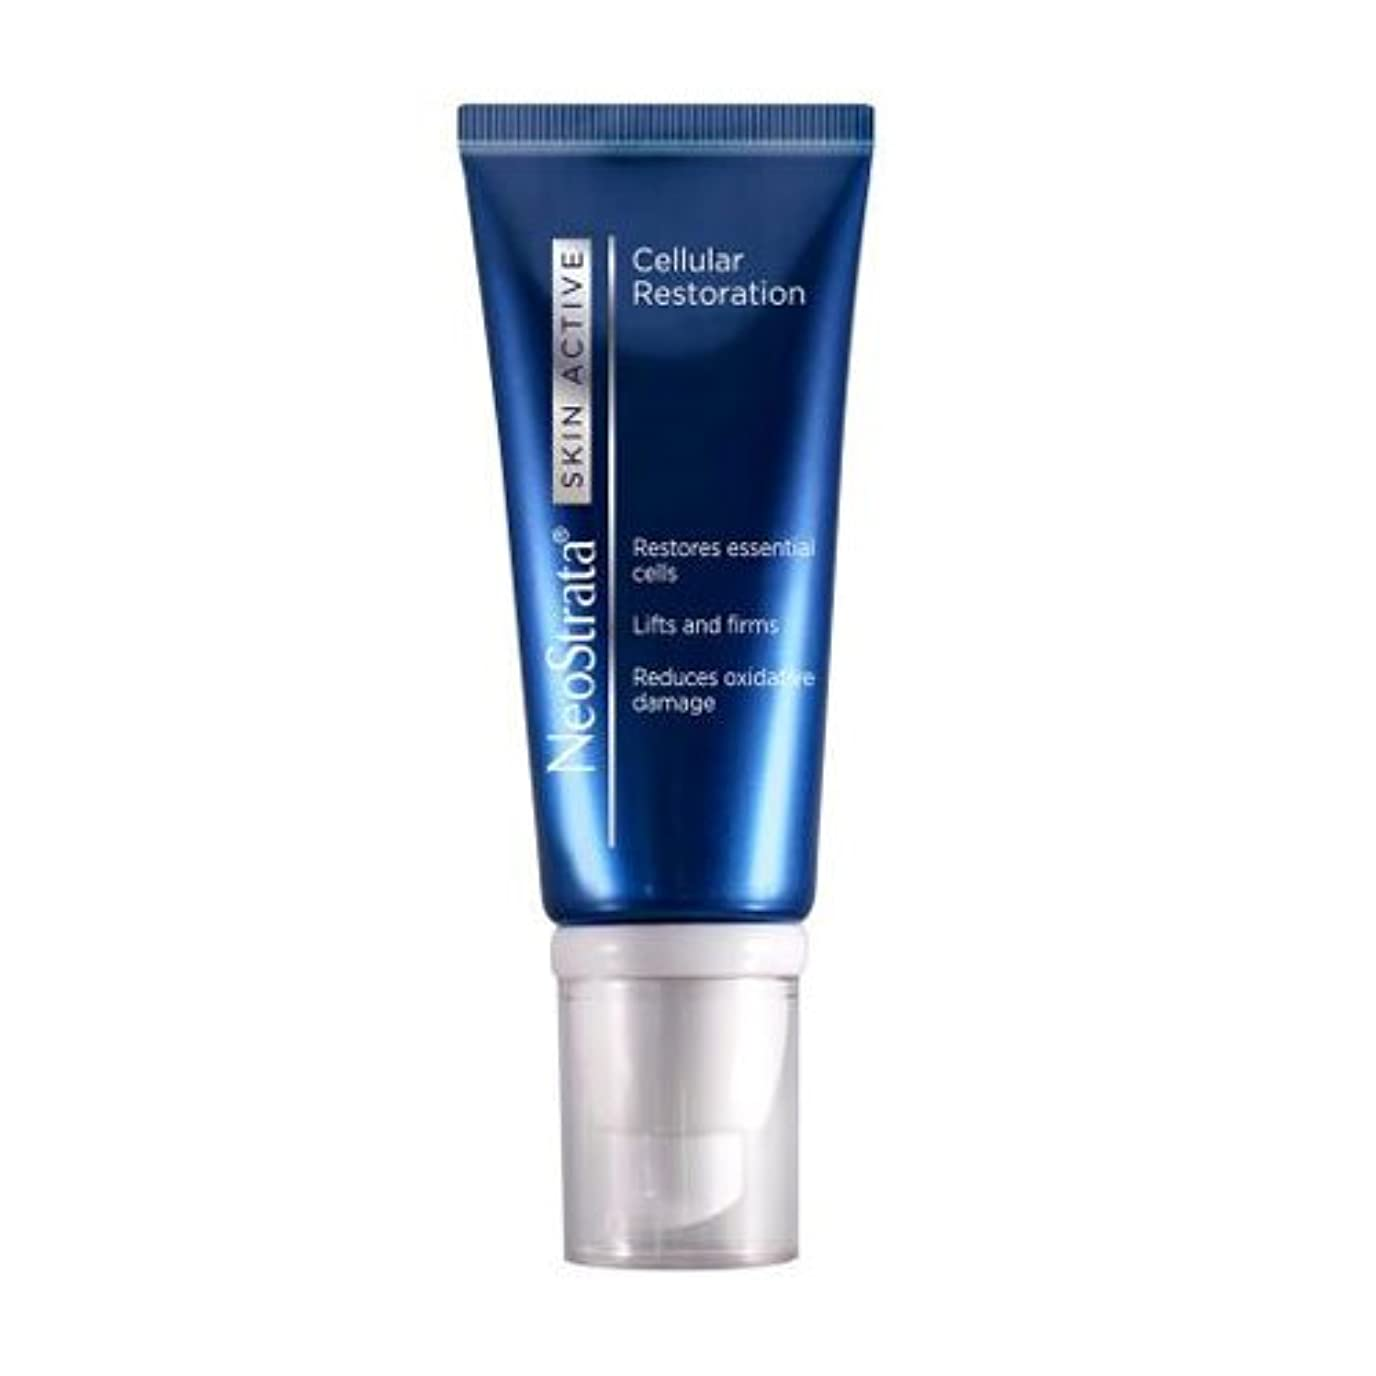 行列ページ慢なNeostrata Skin Active Cellular Restoration 50ml [並行輸入品]